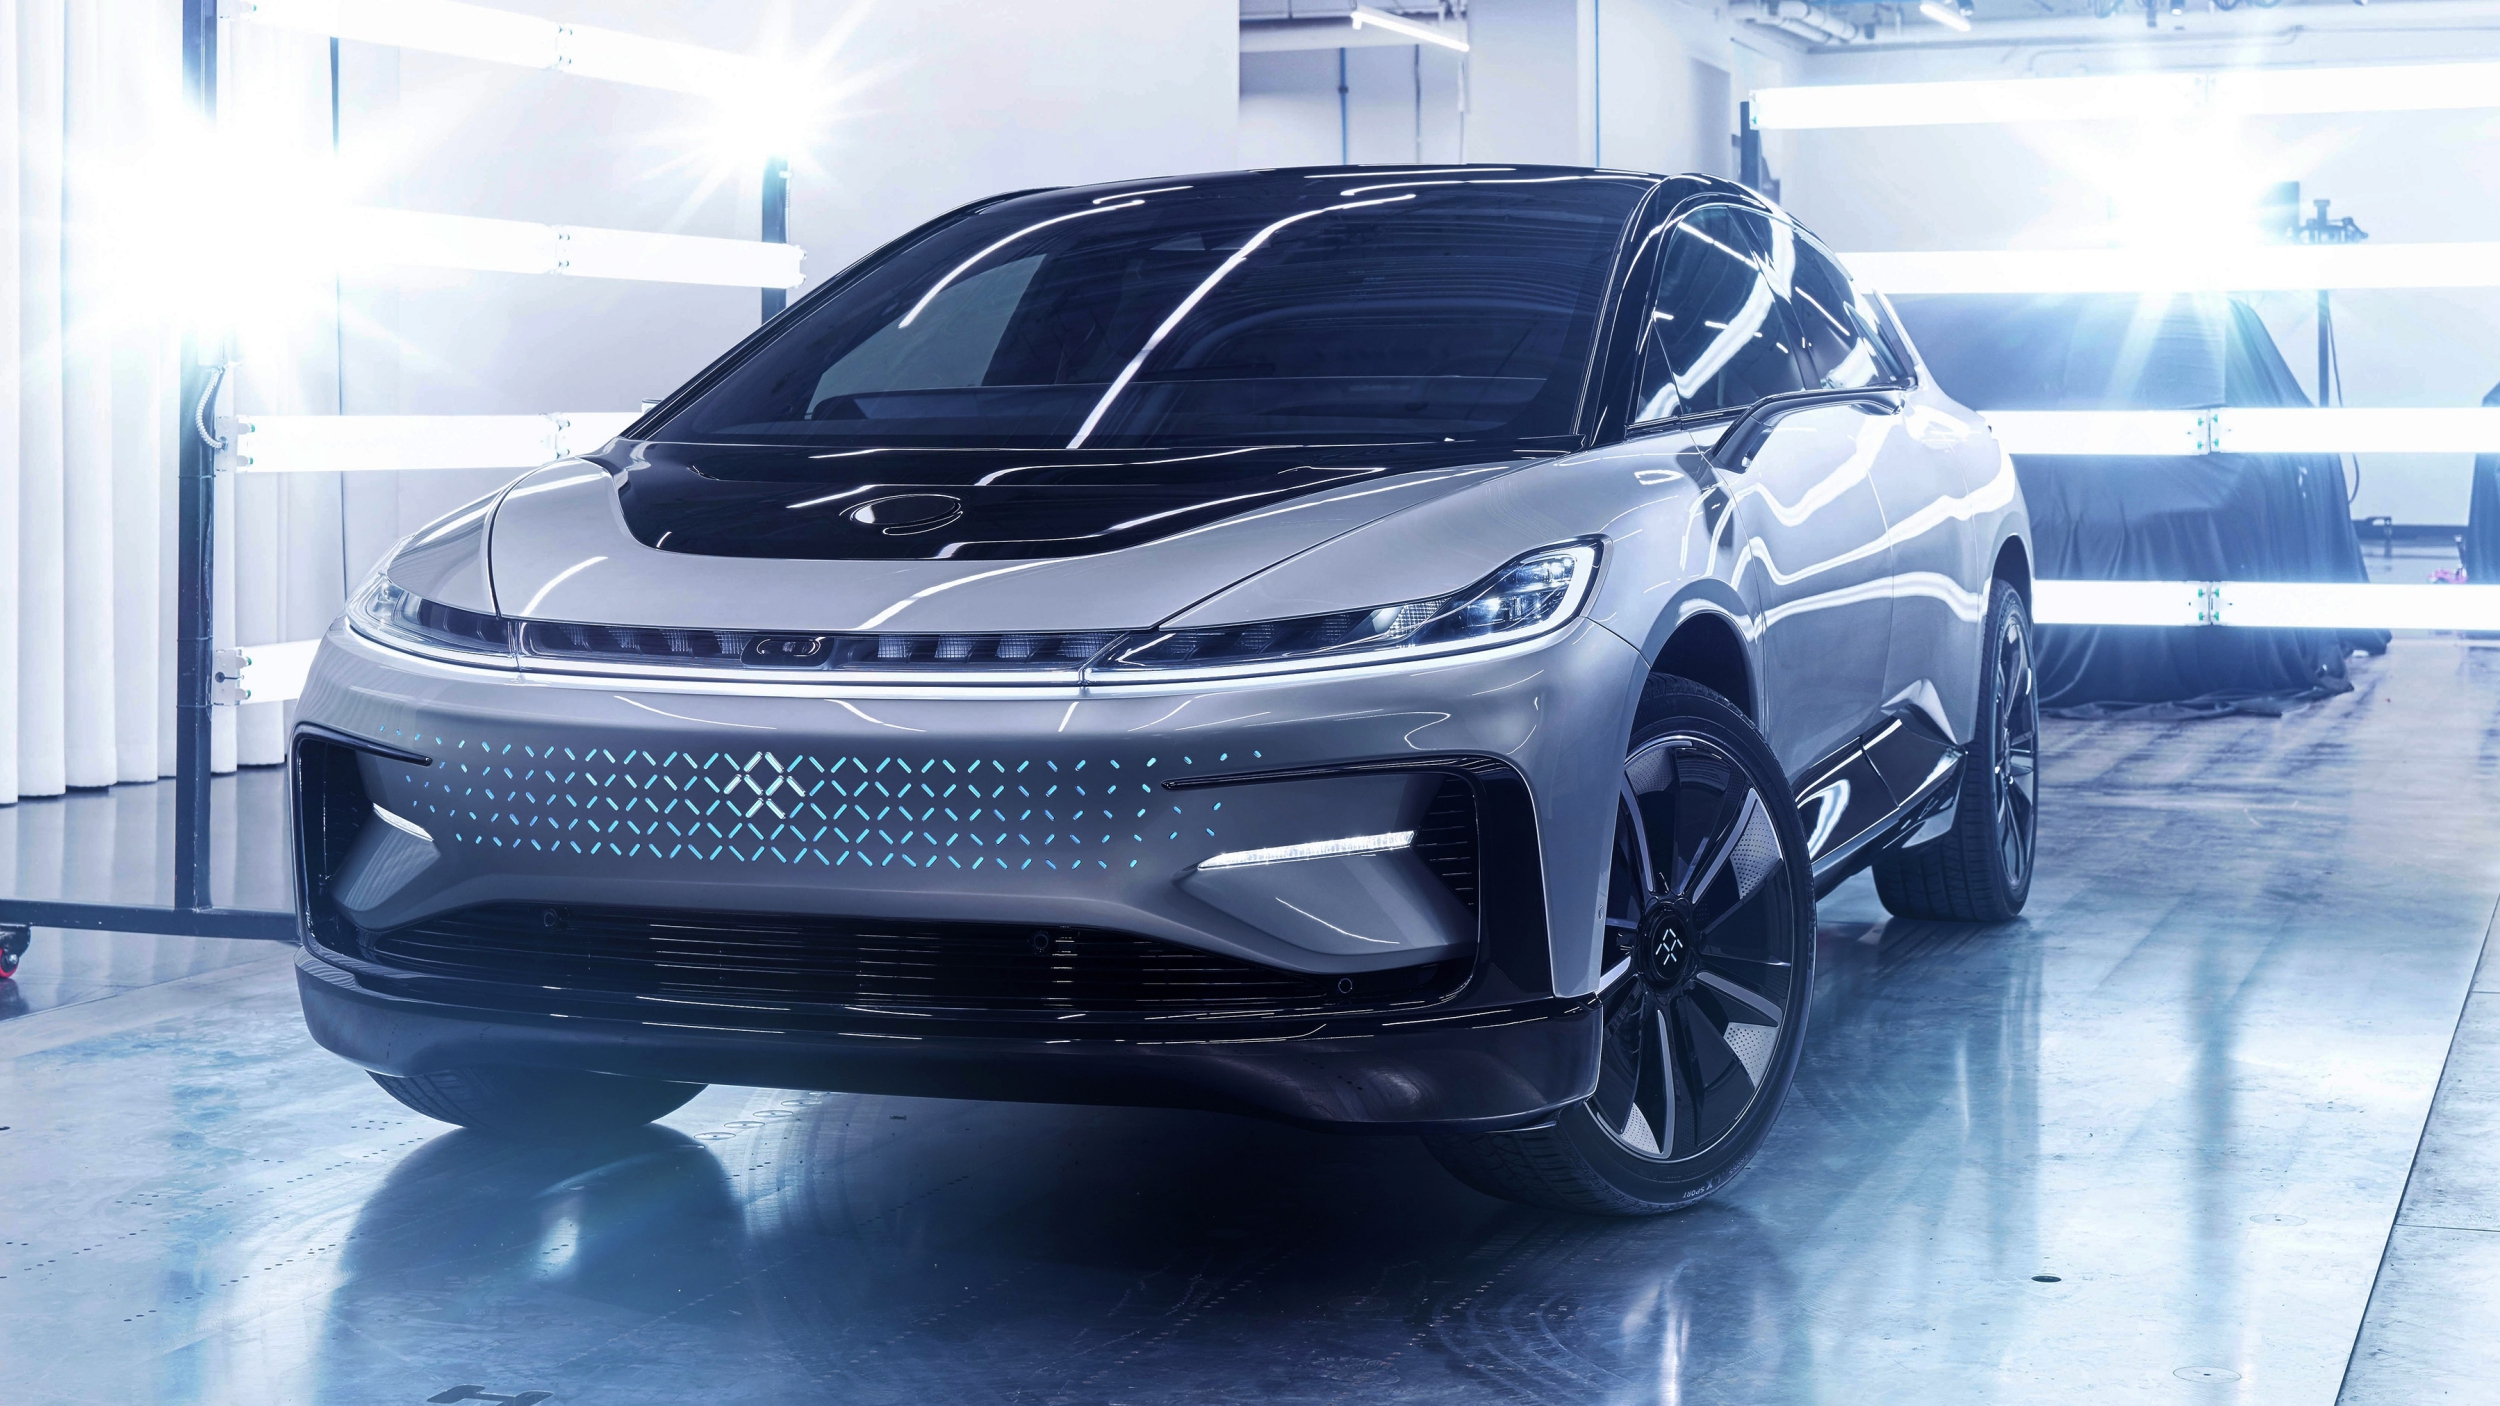 News 1 18 Billion Lifeline For Faraday Future